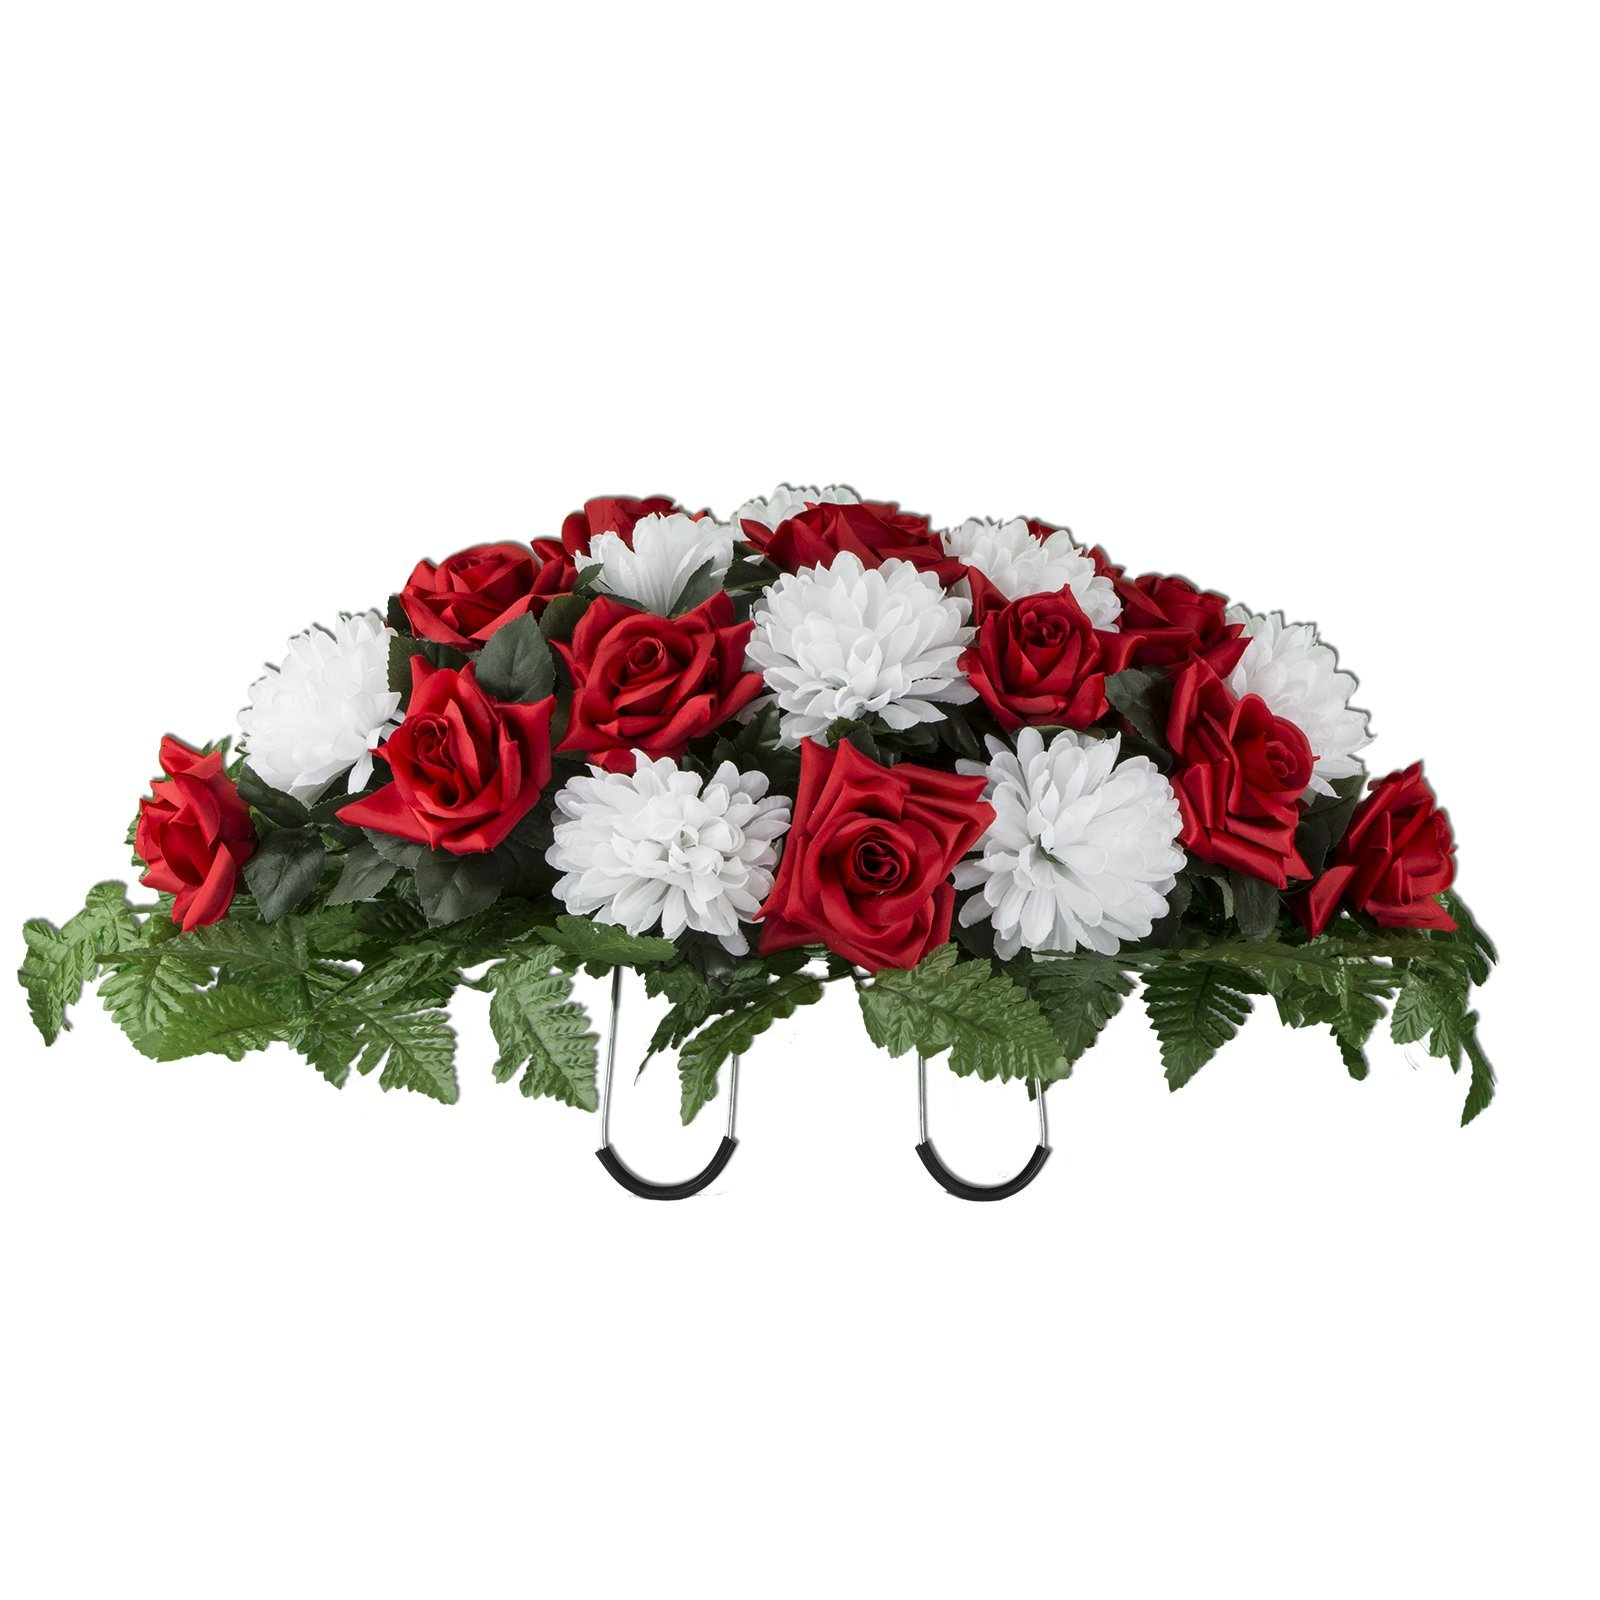 Red-Rose-and-White-Mum-Mix-Artificial-Saddle-Arrangement-SD2141